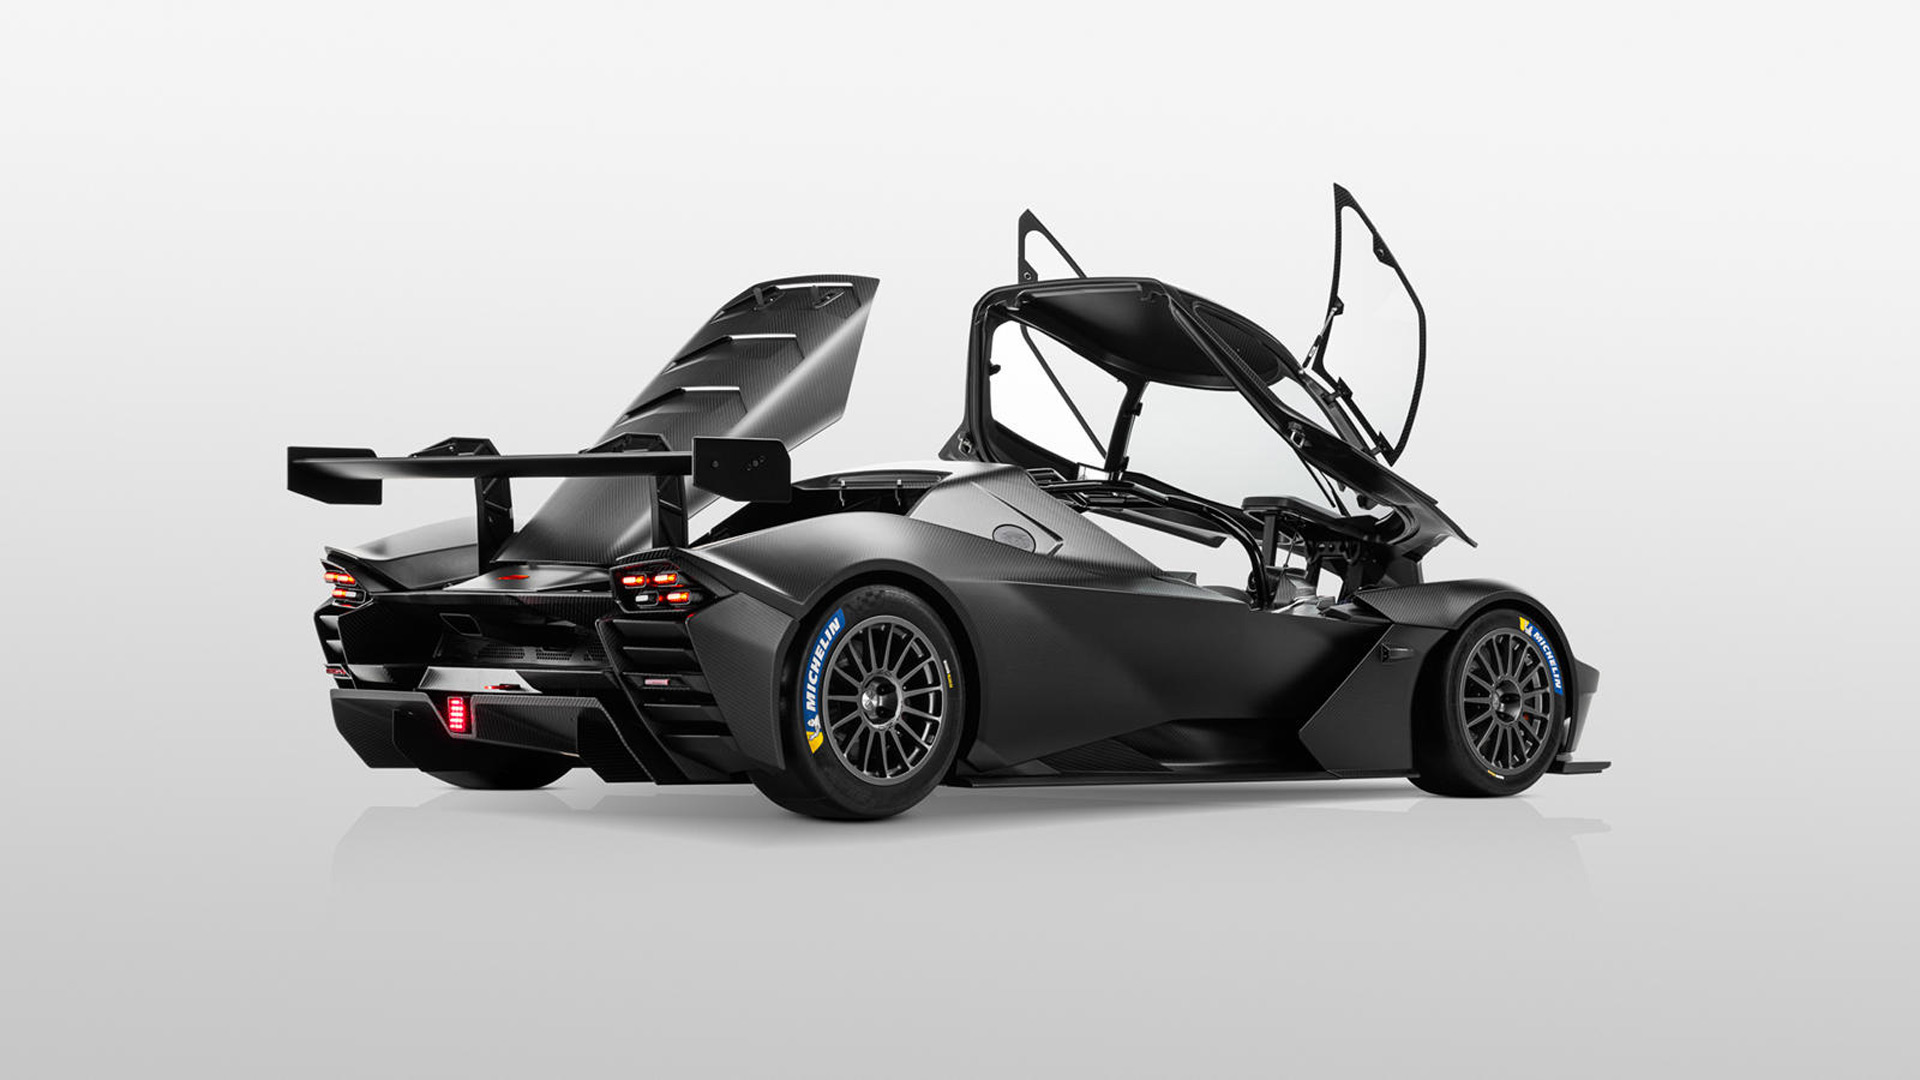 2021-ktm-x-bow-gtx-race-car_100765302_h